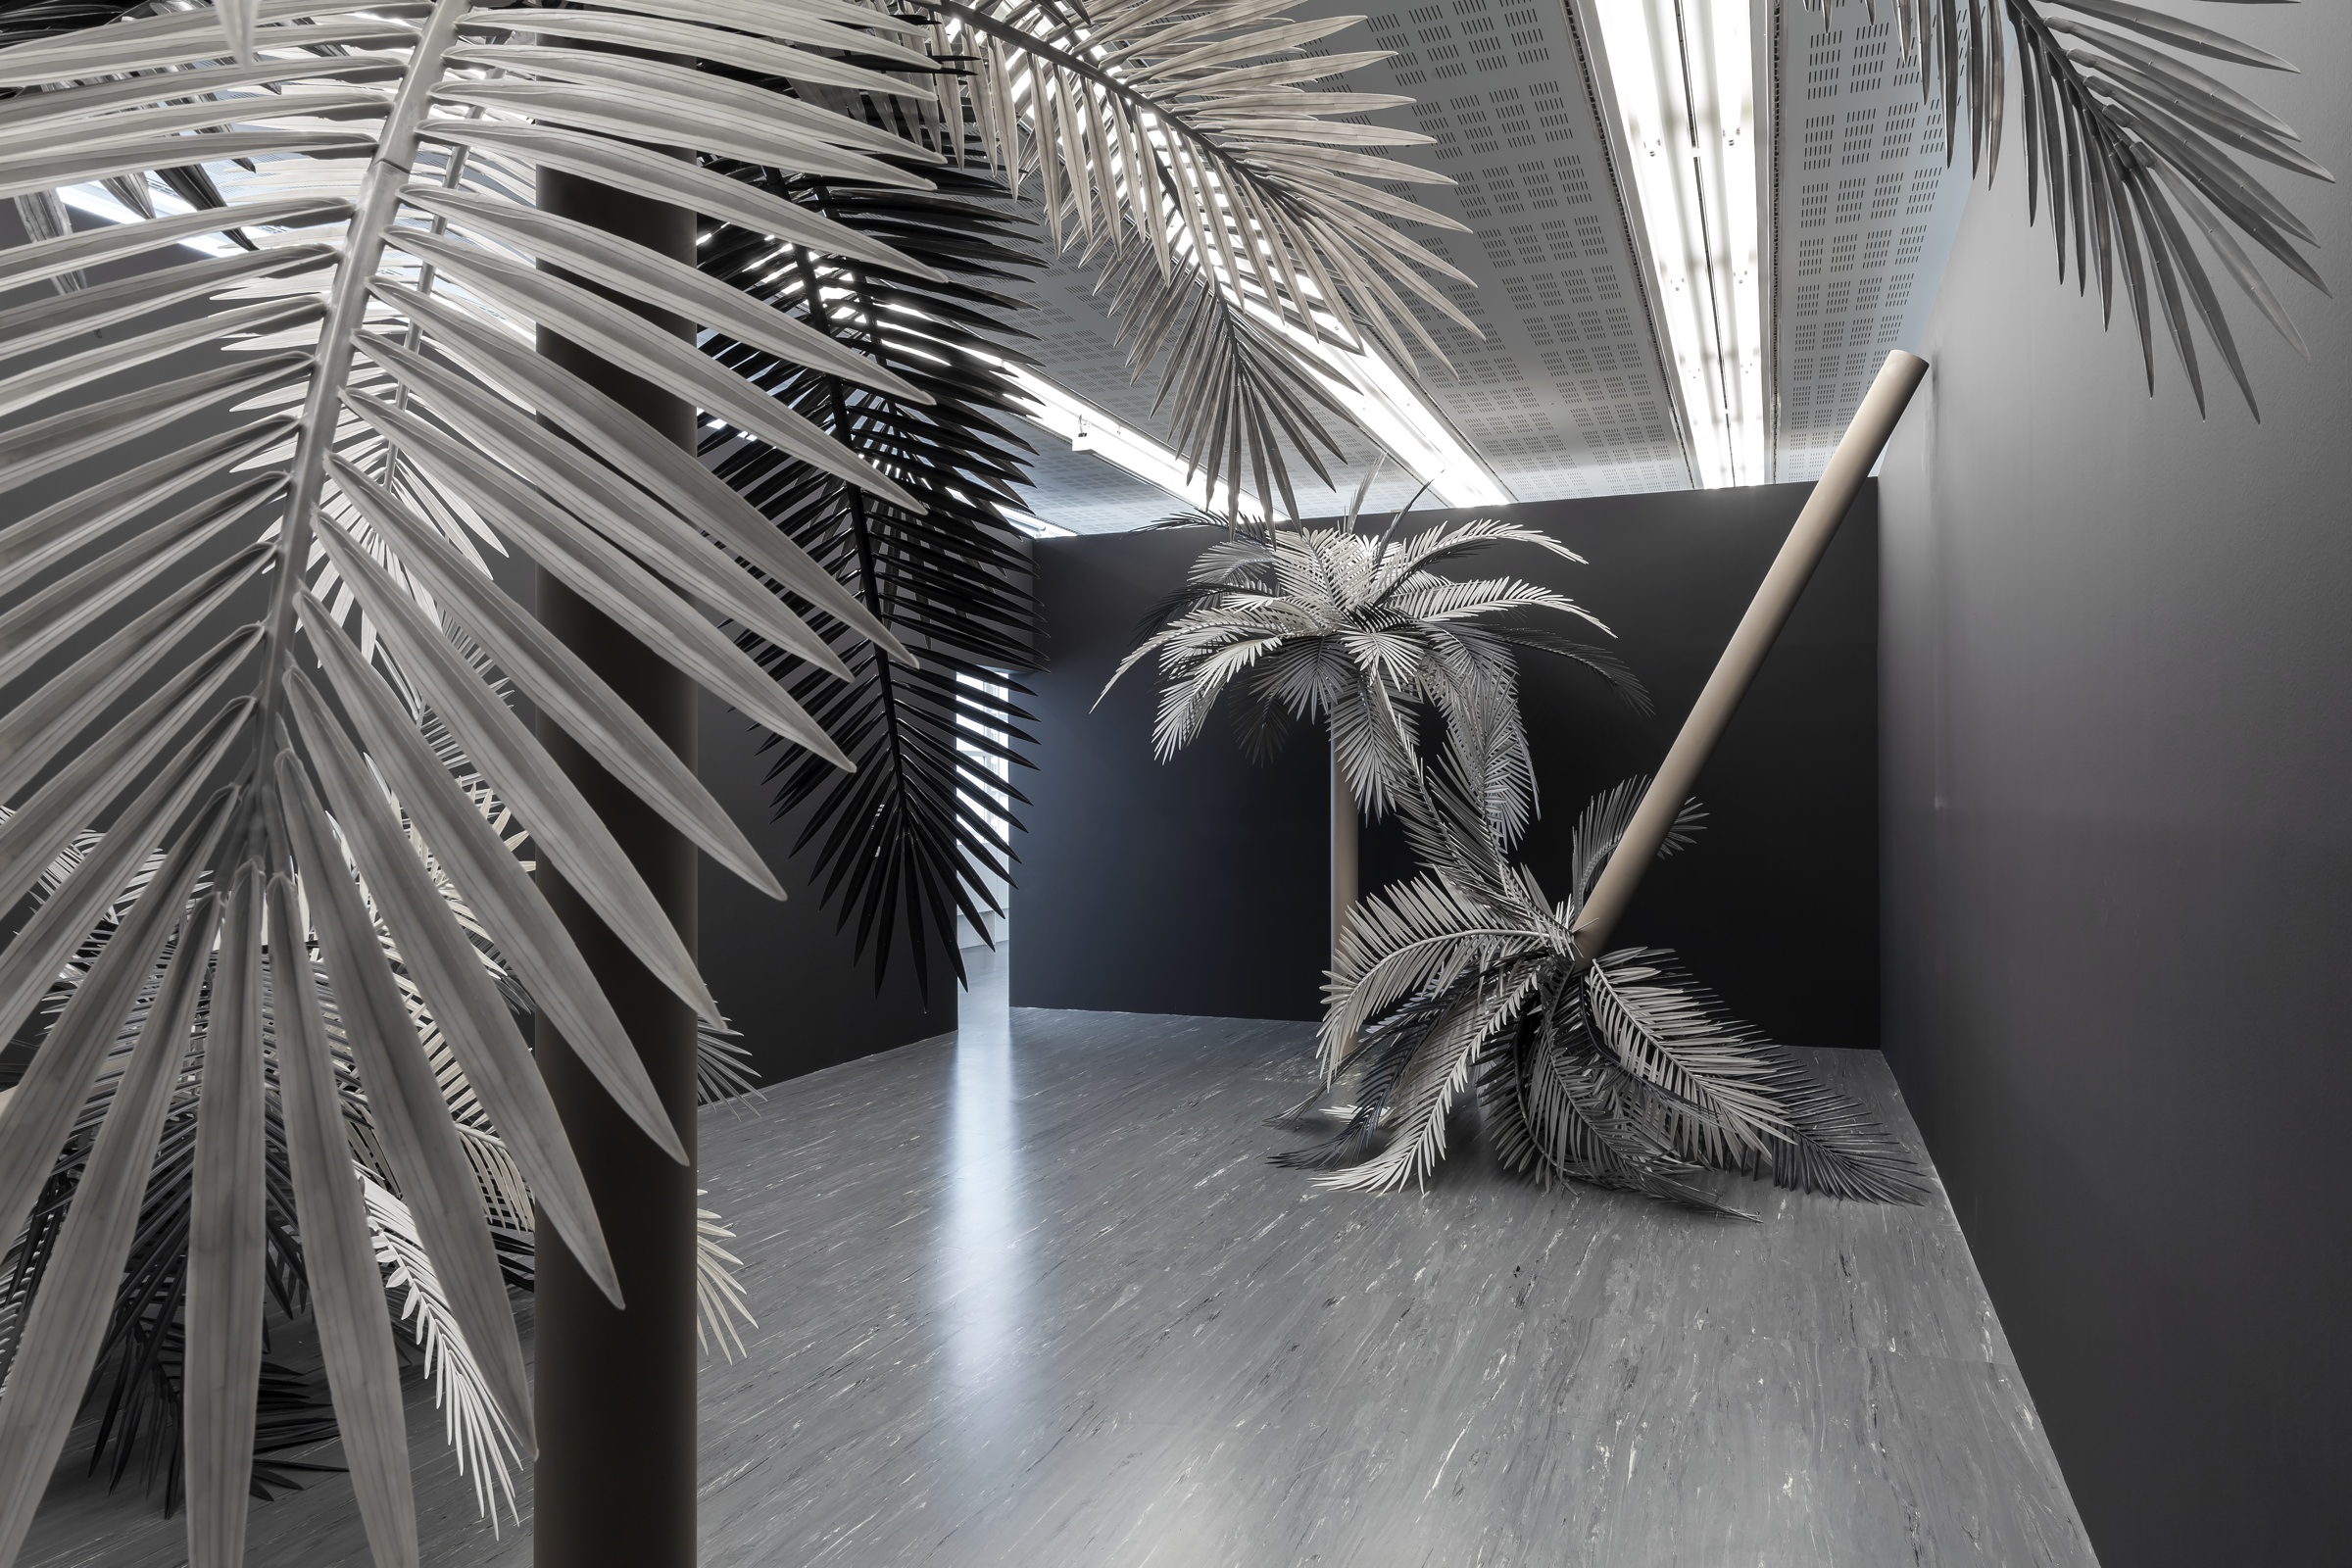 Sarah Ortmeyer, Baden-Baden (Koko I–IV) [2016]. Courtesy of Sarah Ortmeyer and Dvir Gallery, photo : Belvedere       4. IN THE TROPICS OF SARAH ORTMEYER   Sarah Ortmeyer sent me this photo of her exhibition at the Kunsthalle in Baden-Baden (on until August 28th). She developed a project at the Monnaie de Paris [French national mint] where she installed a hundred or so eggs beneath palm trees instead of coconuts… Sarah went to the Städelschule fine arts academy in Frankfurt and now resides in Vienna. Her exhibitions and her installations are always incredibly elegant, both ultra-minimalist and very funny. She might be a conceptual artist but she remains equally fascinated by pop culture. I remember her book about Riri, Fifi and Loulou, whose names were translated into every language, and her obsession with Shiloh Jolie-Pitt, the tomboy daughter of Brangelina. Sarah also worked on Kant and the way the philosopher would dress according to the environment in which he found himself. That resulted in Kant Elegant, a series of sculptures featuring big brand clothes draped carefully over plants.      www.kunsthalle-baden-baden.de